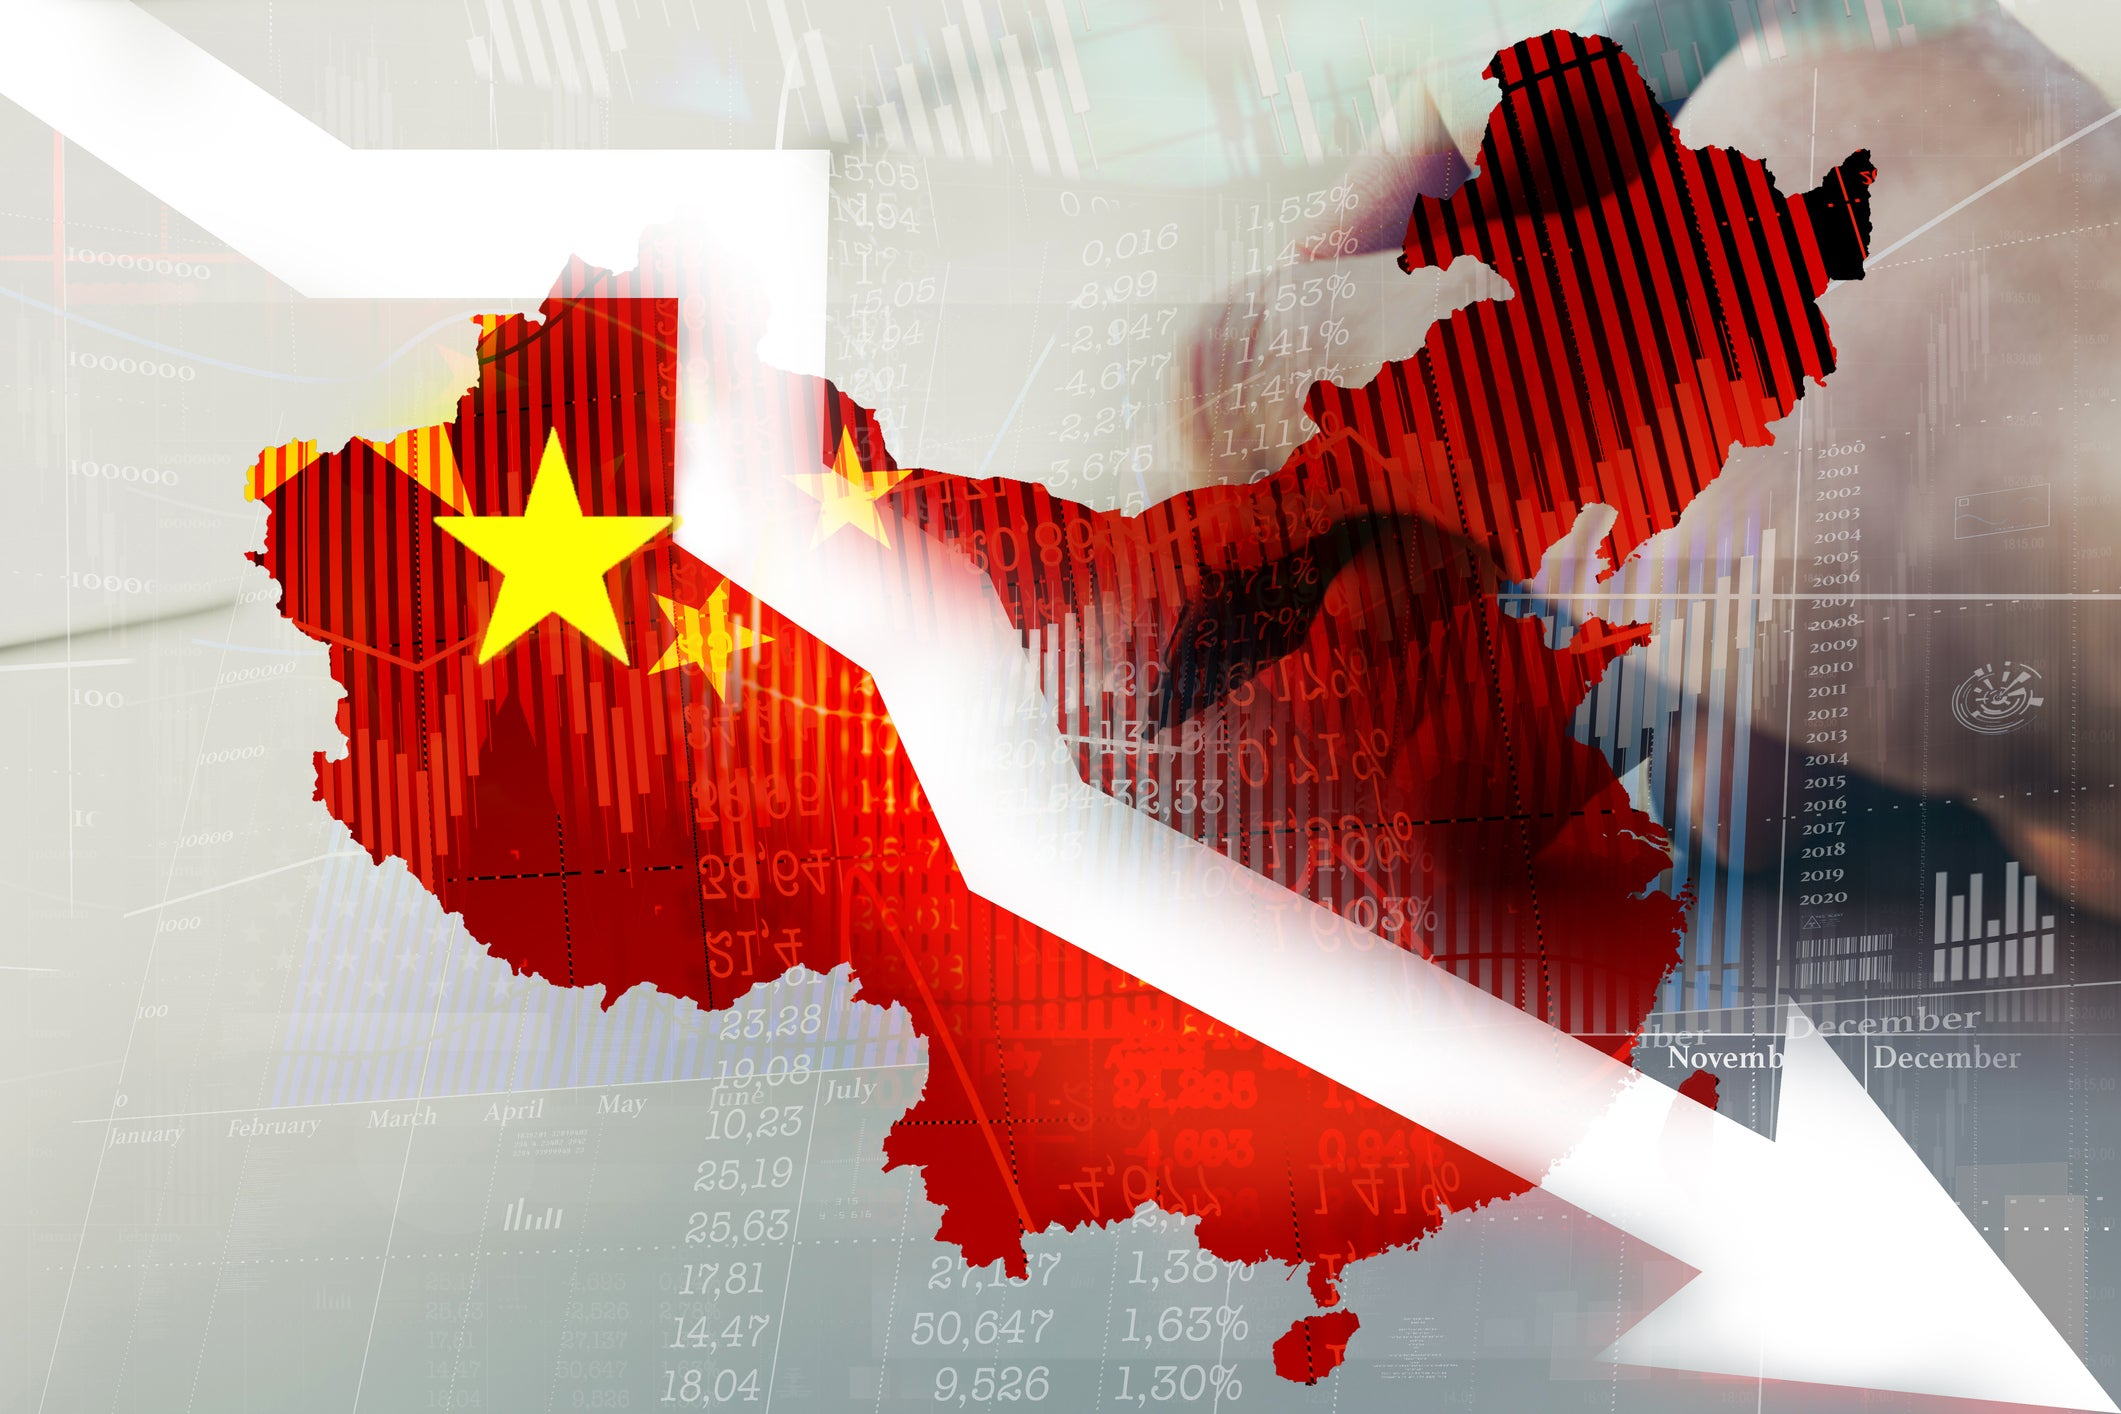 Why I Just Sold These 3 Chinese Tech Stocks